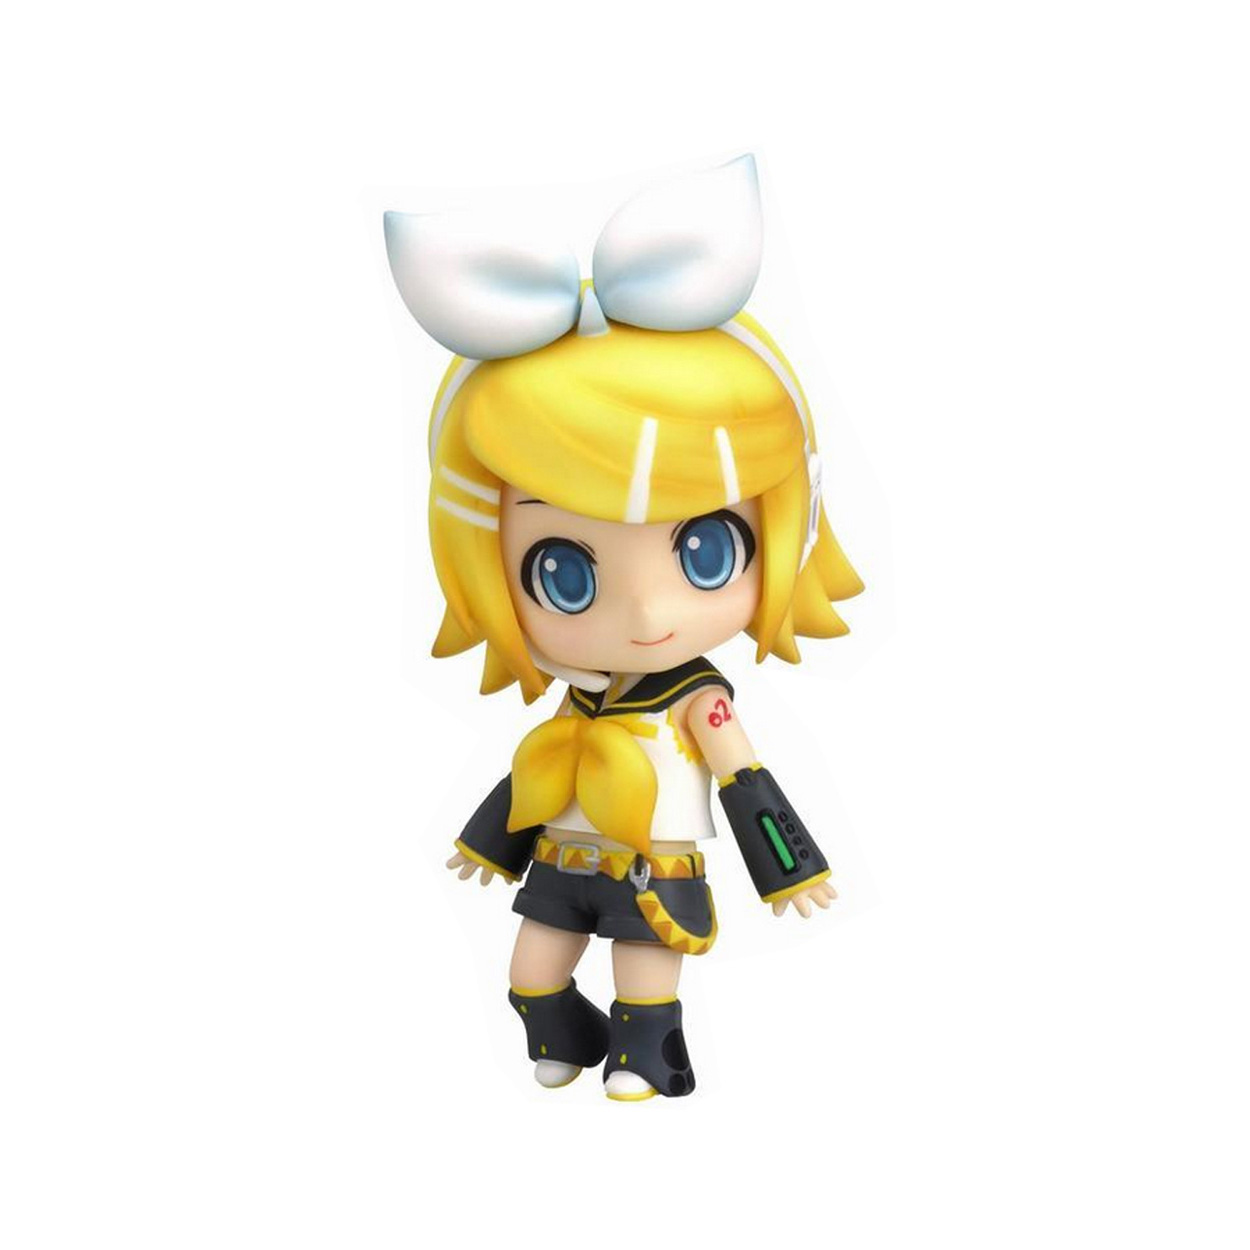 Chanycore GSC Nendoroid 189# Vocaloid Hatsune Miku Kagamine Rin Miku Sakura Miku PVC Action Figure Collection Model Toy 10cm 4'' 2017 anime vocaloid kagamine rin ren len cafe maid dress cosplay costume o